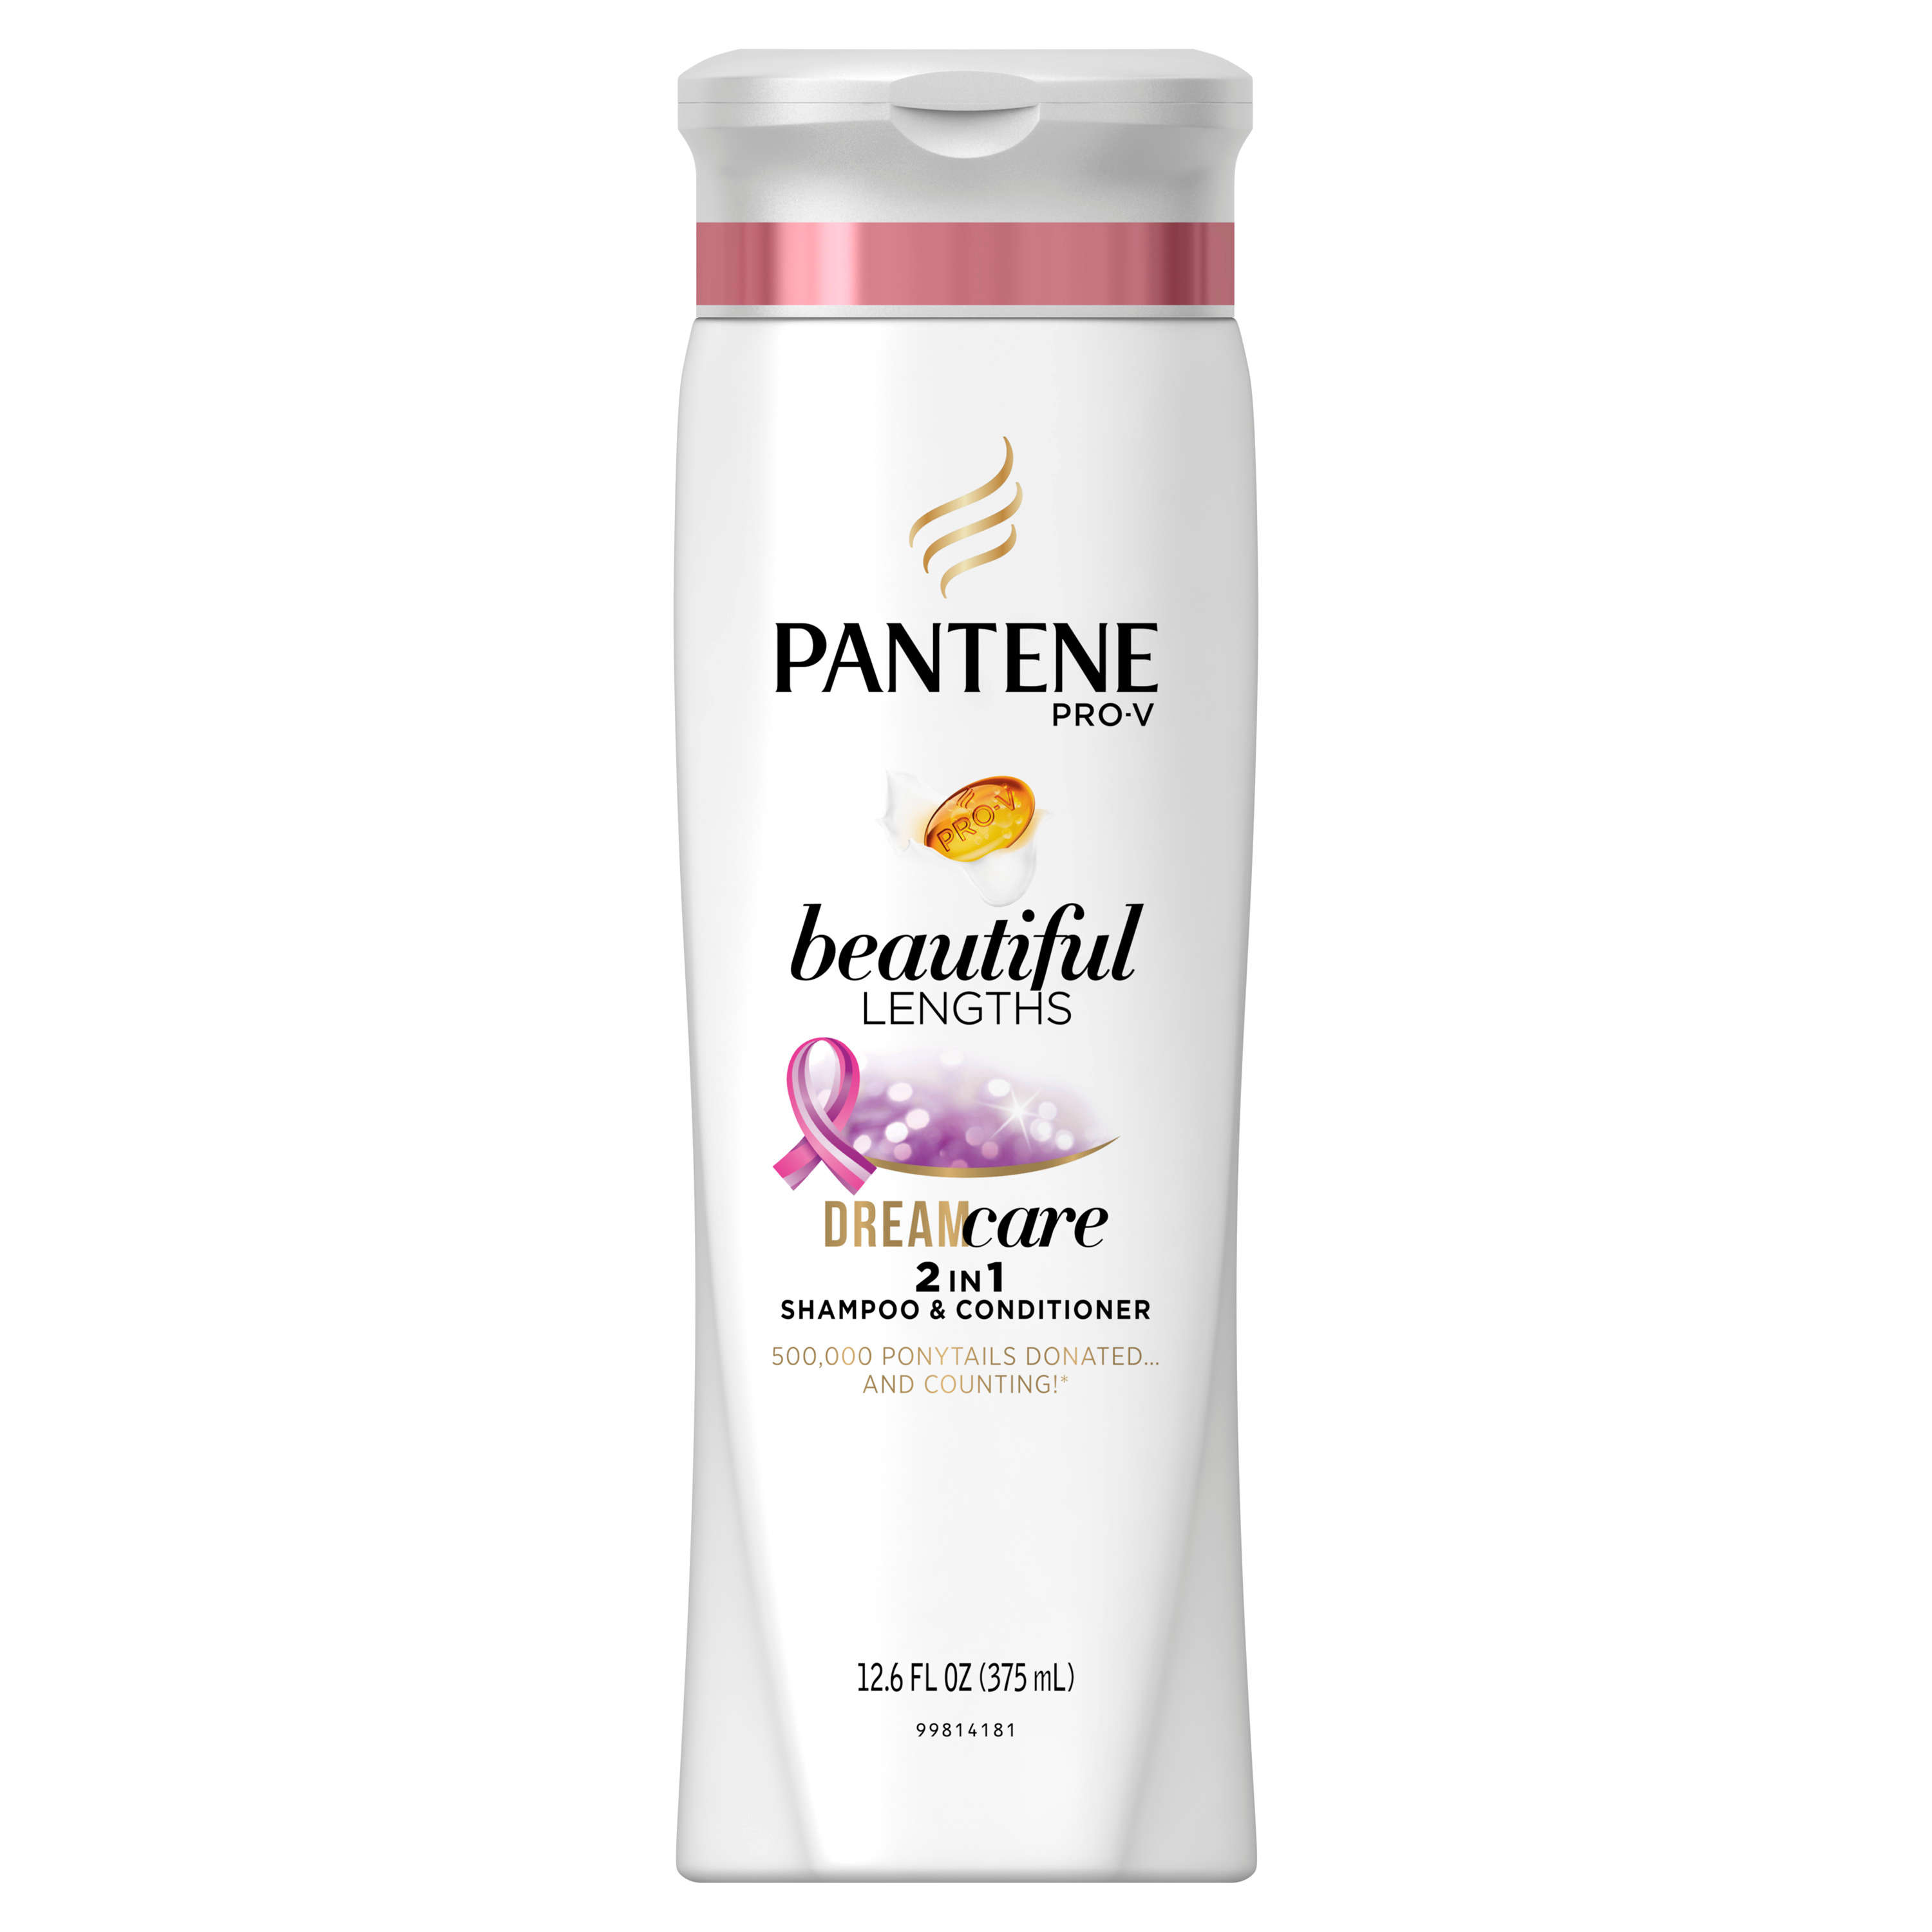 Pantene Pro-V Beautiful Lengths 2-in-1 Shampoo & Conditioner